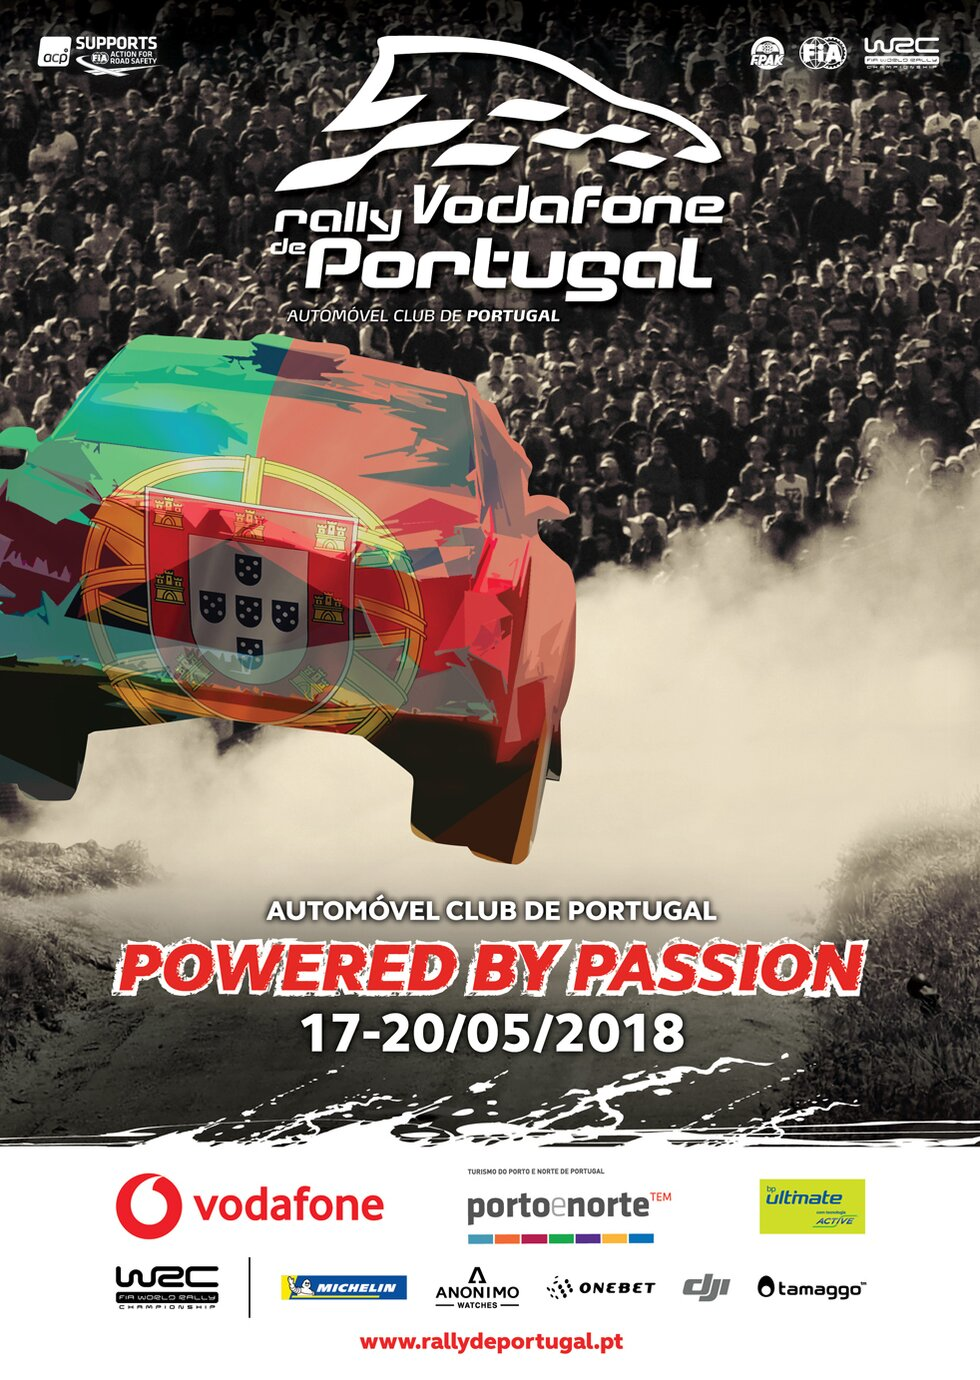 Evento rally de portugal 1 2500 2500 1  1 980 2500